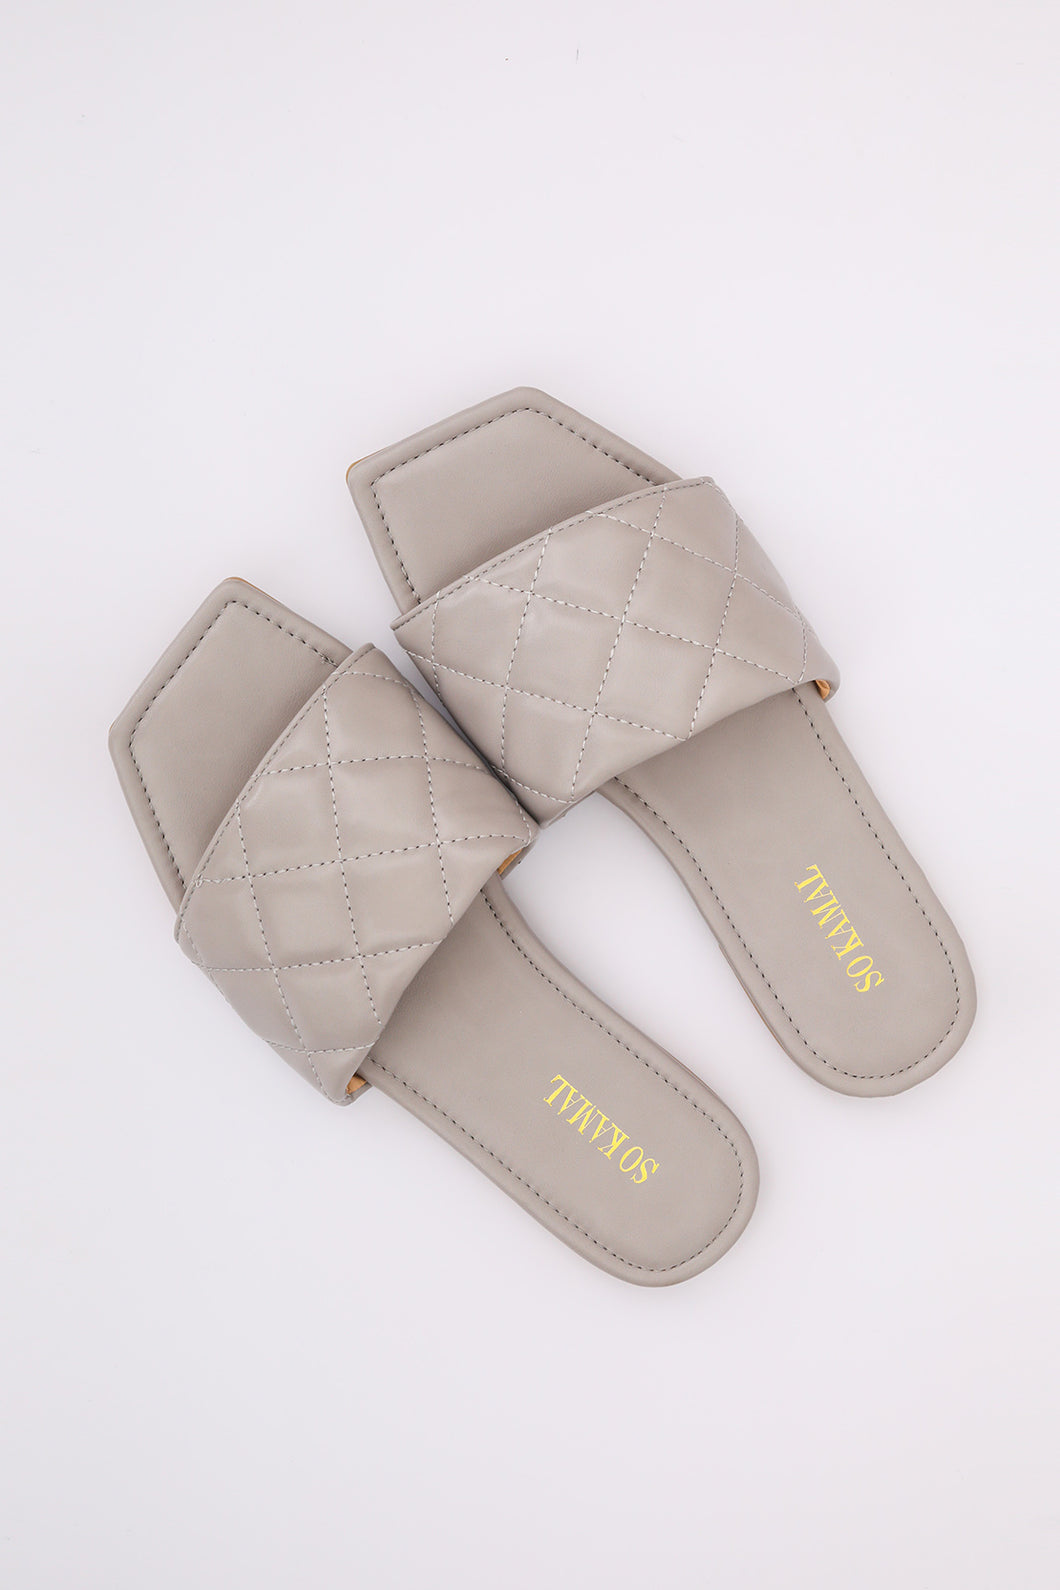 Square Toed Flats - Grey